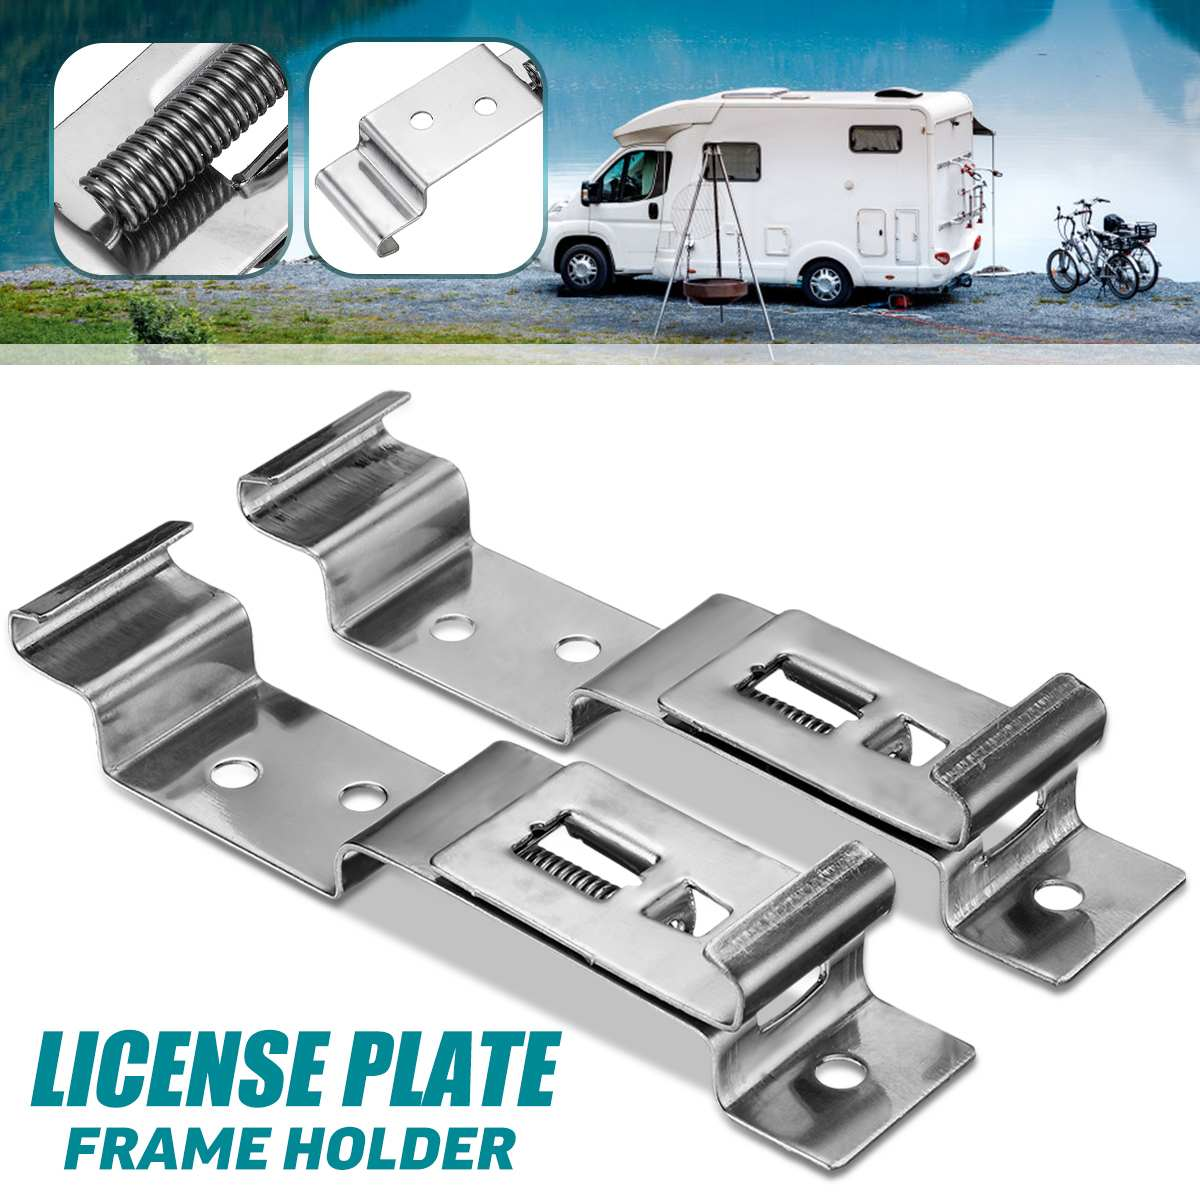 2Pcs European EU Stainless Steel Car Number License Plate Frame Holder Bracket Rack For Camper Trailer Truck Clips Cover Spring